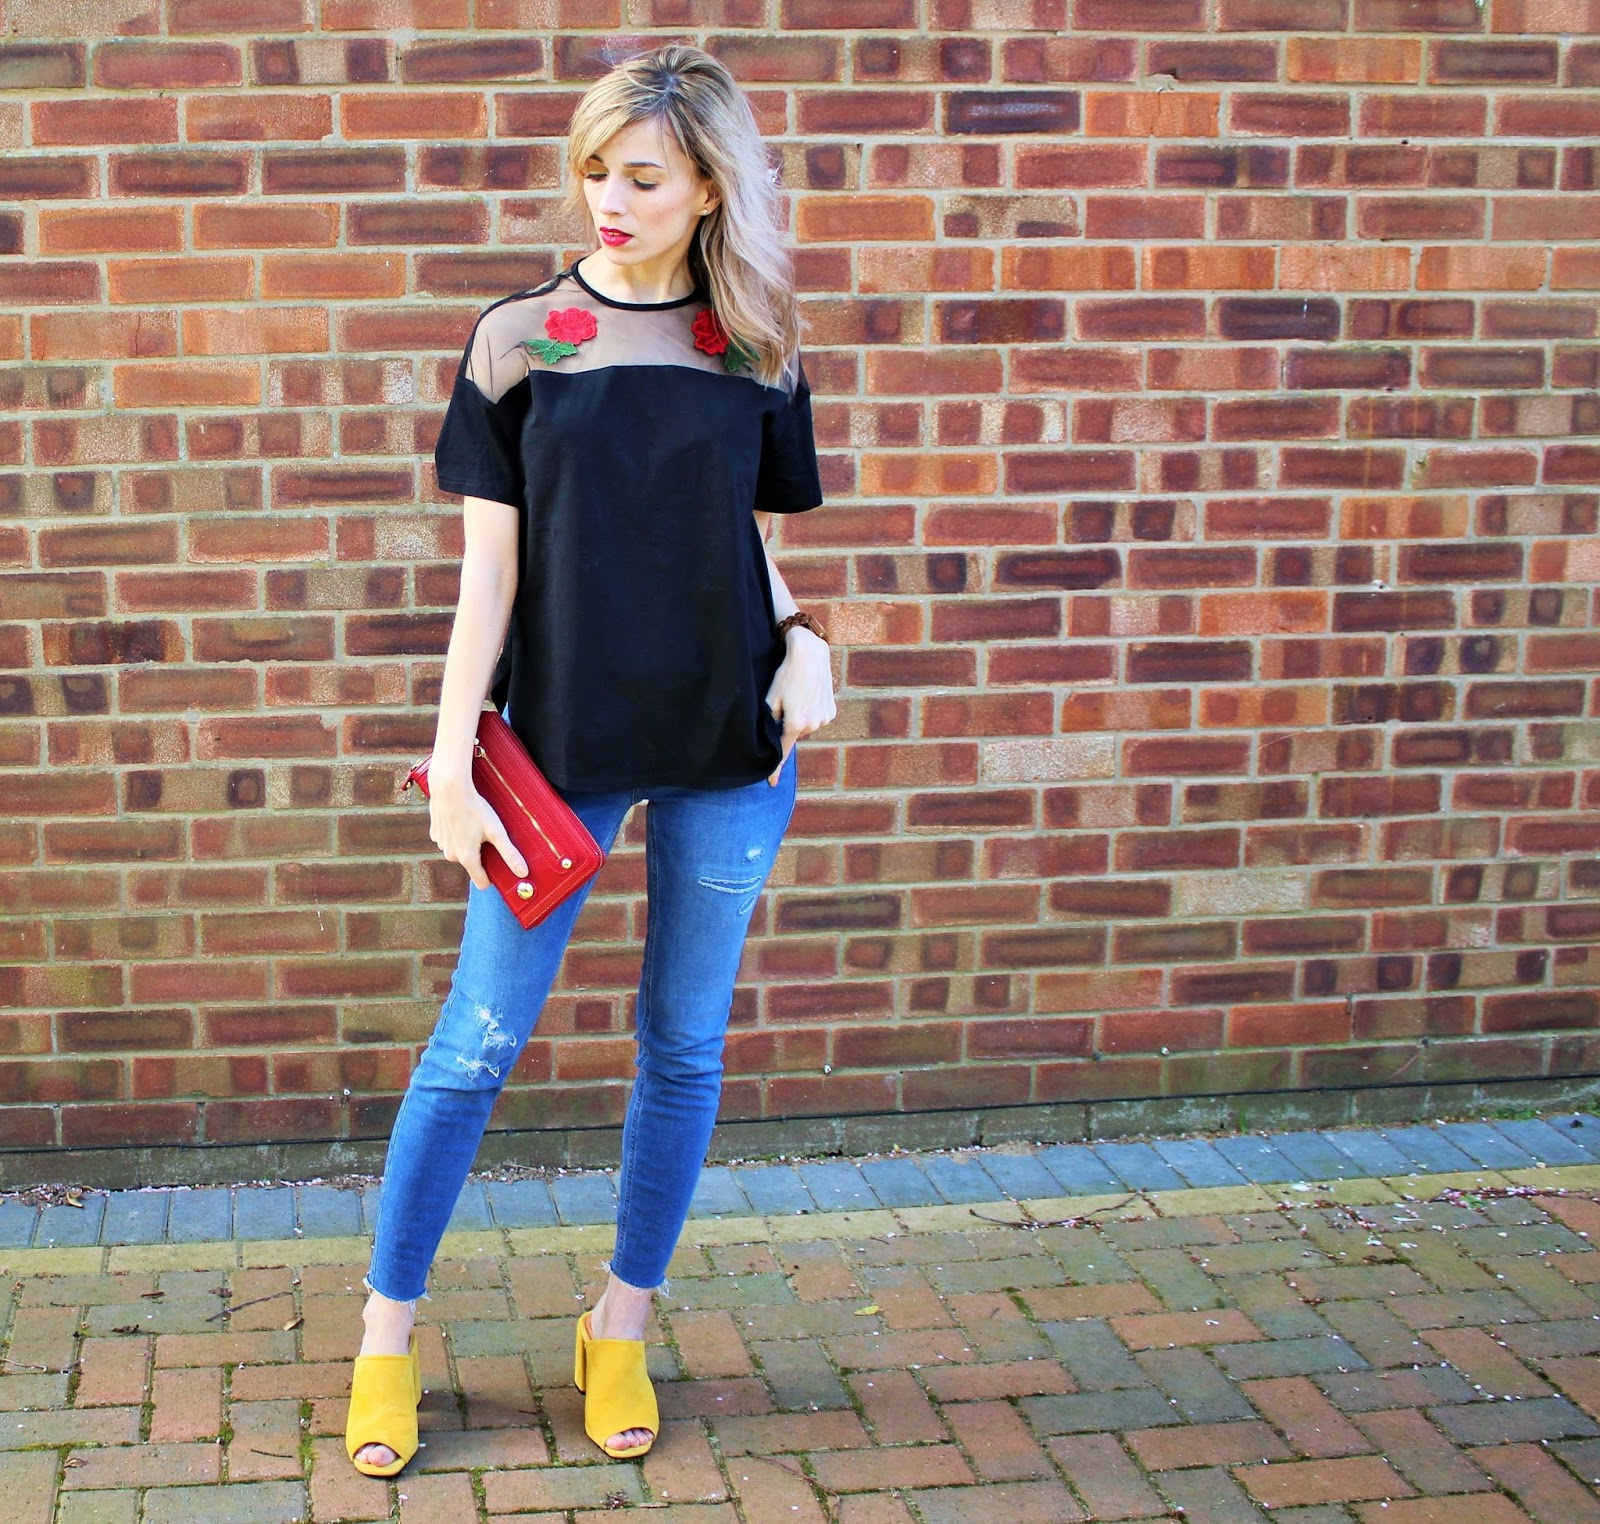 Colourful OOTD featuring embroidery, raw hem jeans and yellow mules - 1